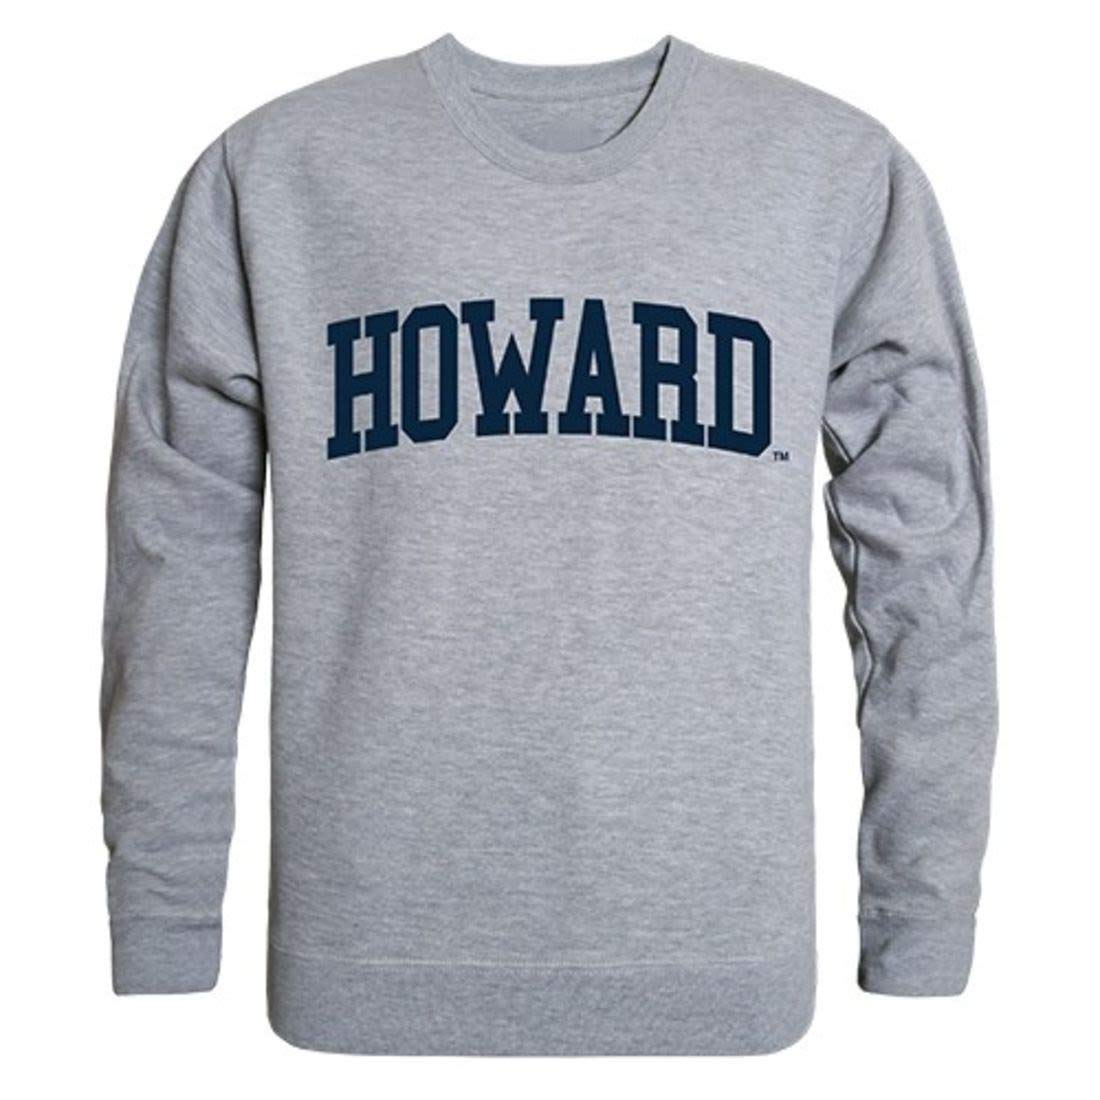 Howard University Game Day Crewneck Pullover Sweatshirt Sweater Heather Grey Small by W Republic